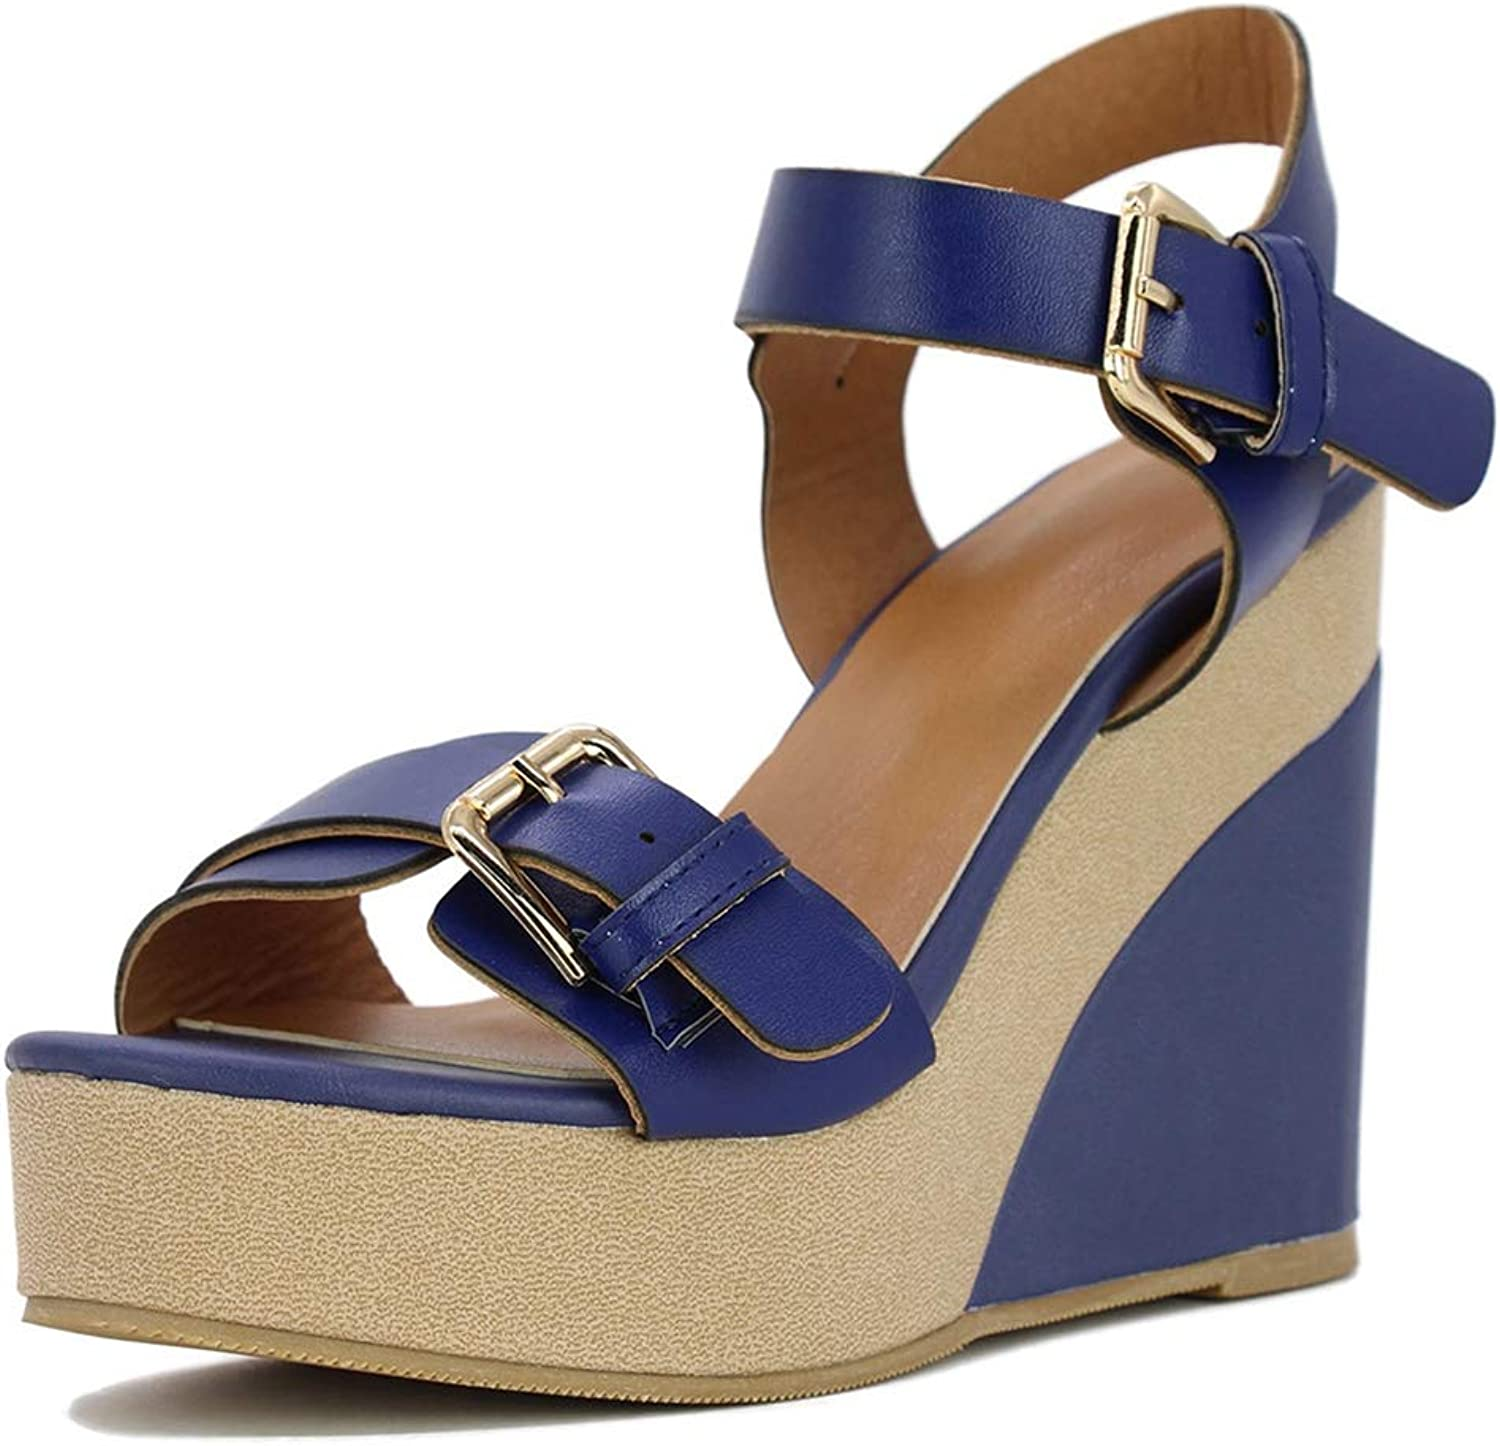 Pophight 2019 New Women's Flock Ankle Strap Square high Heels Round Toe Solid shoes Woman Casual Summer Sandals Big Size 10 11 42